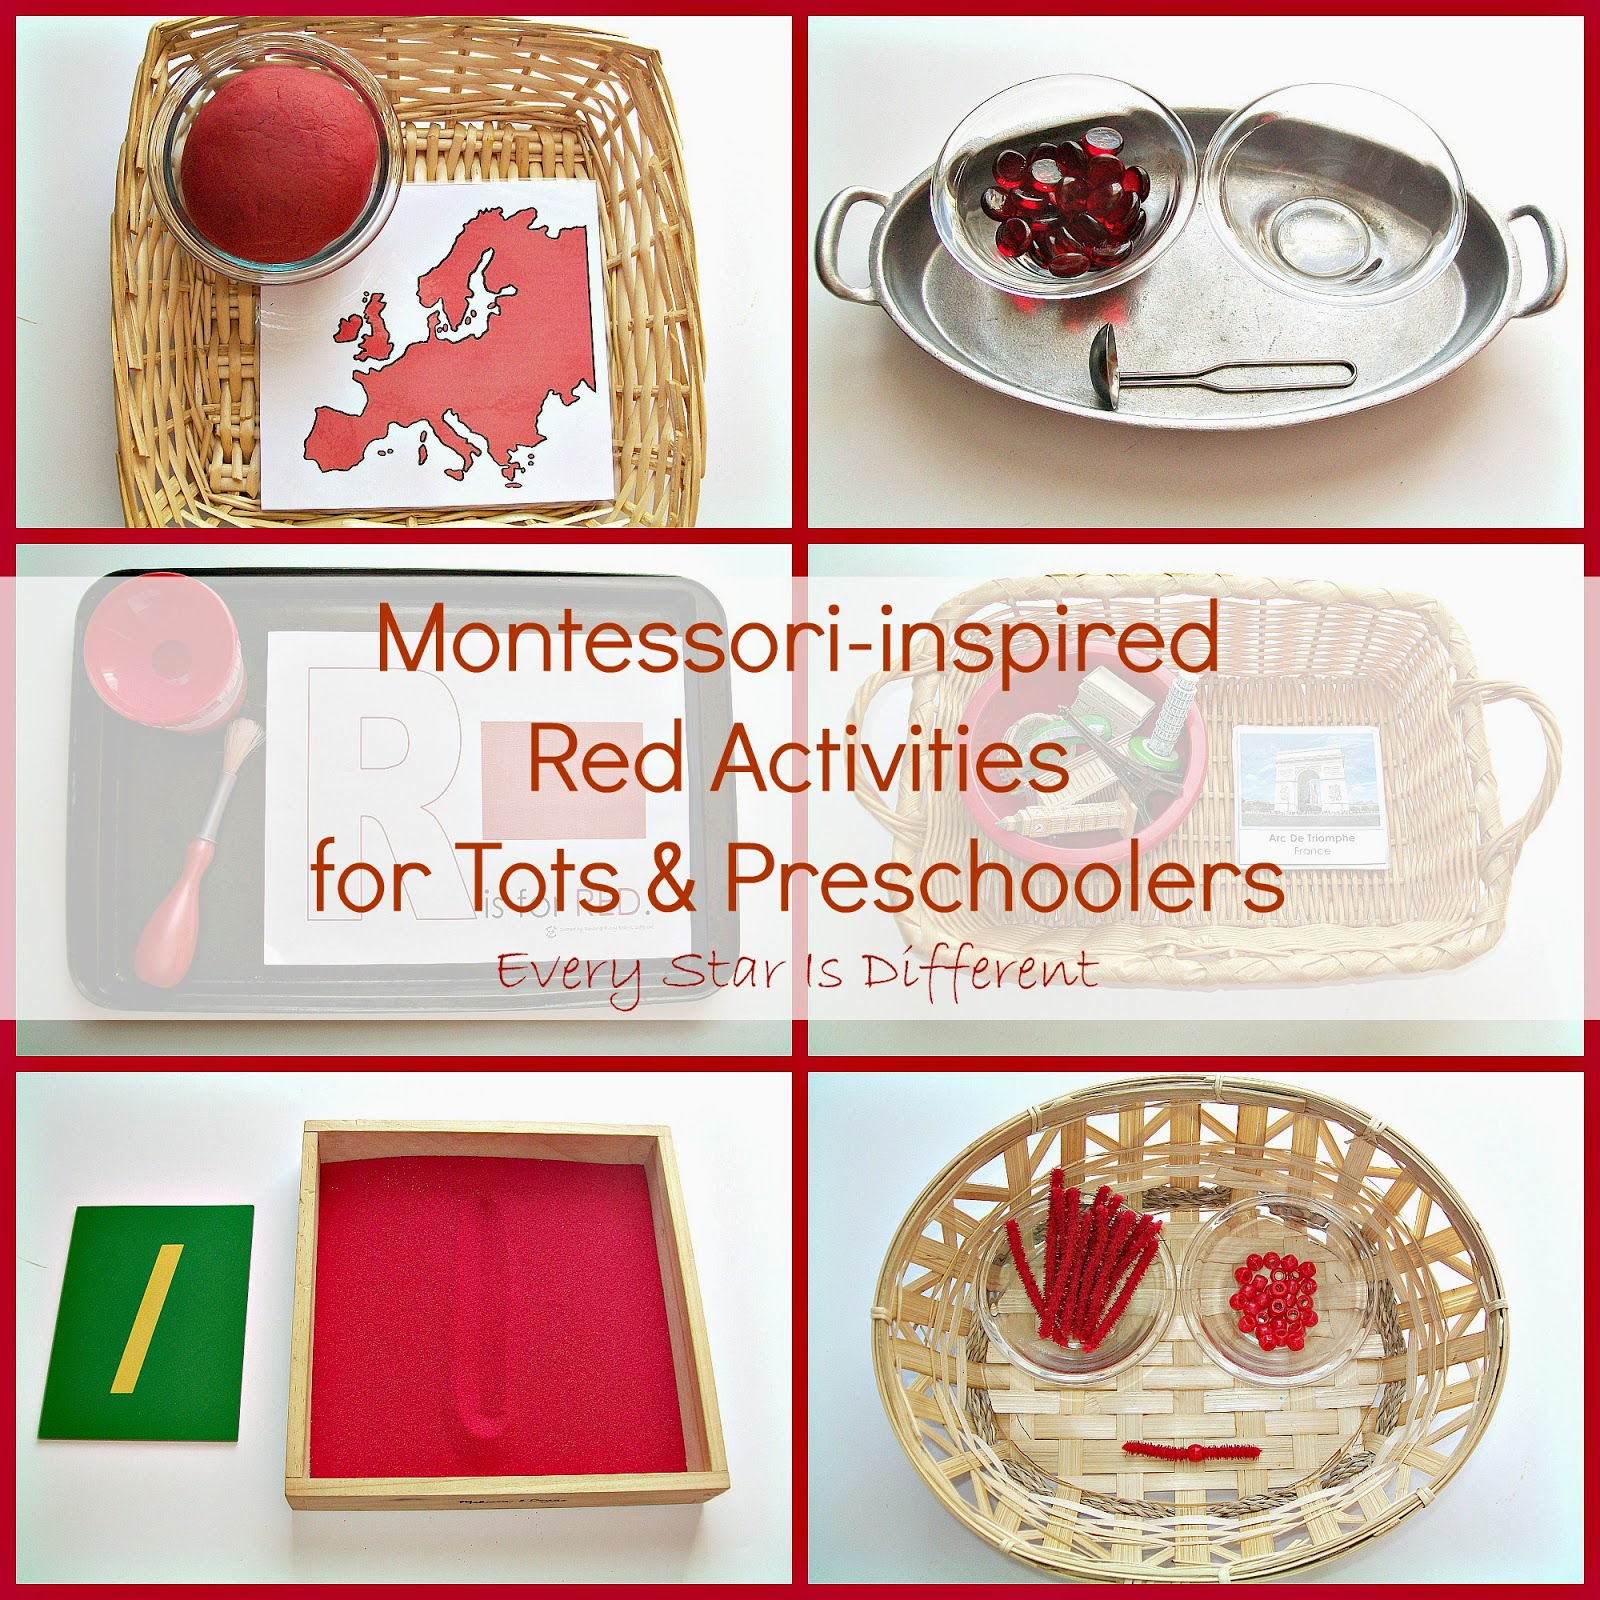 Montessori-inspired Red Activities